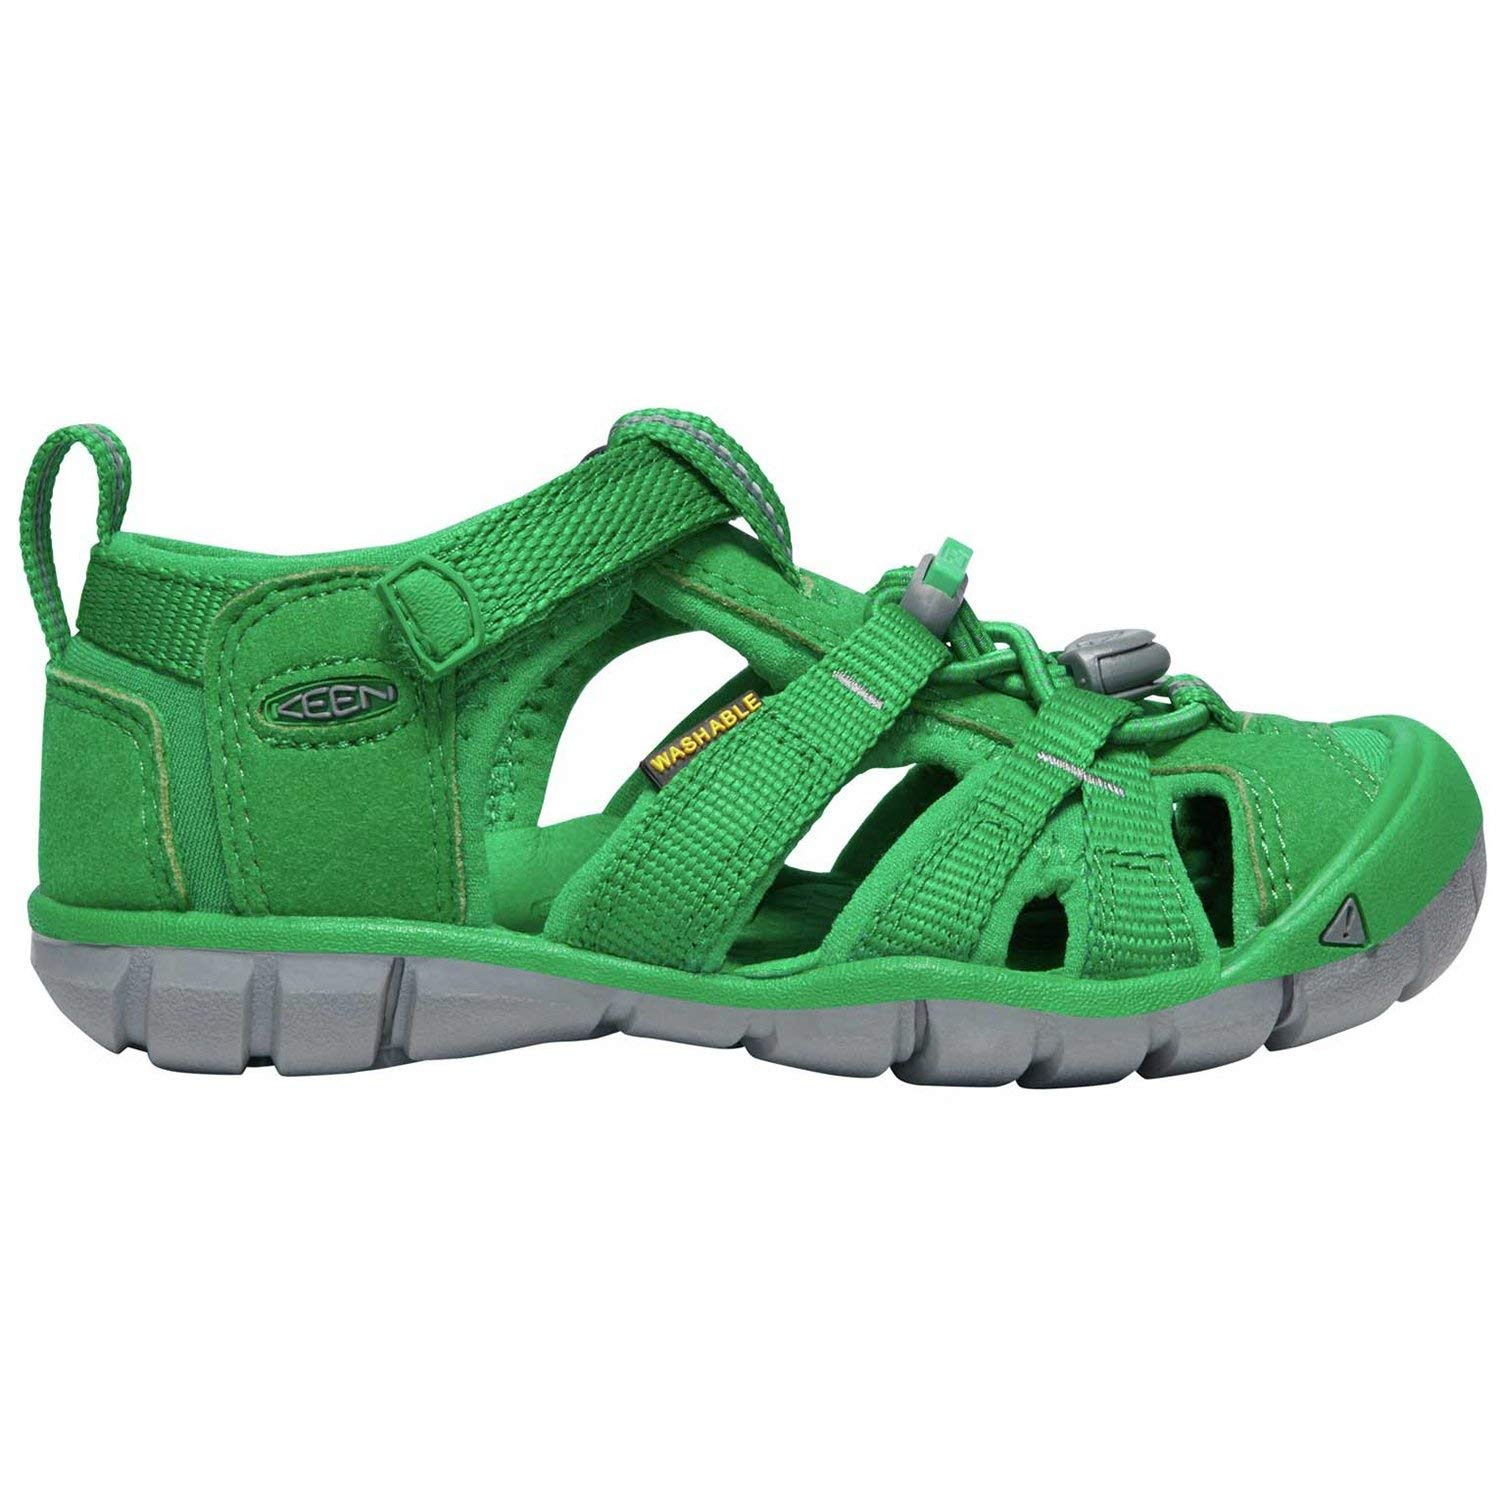 Keen - 1020680-1020680 - Color: Green - Size: 11.0 by Keen (Image #1)